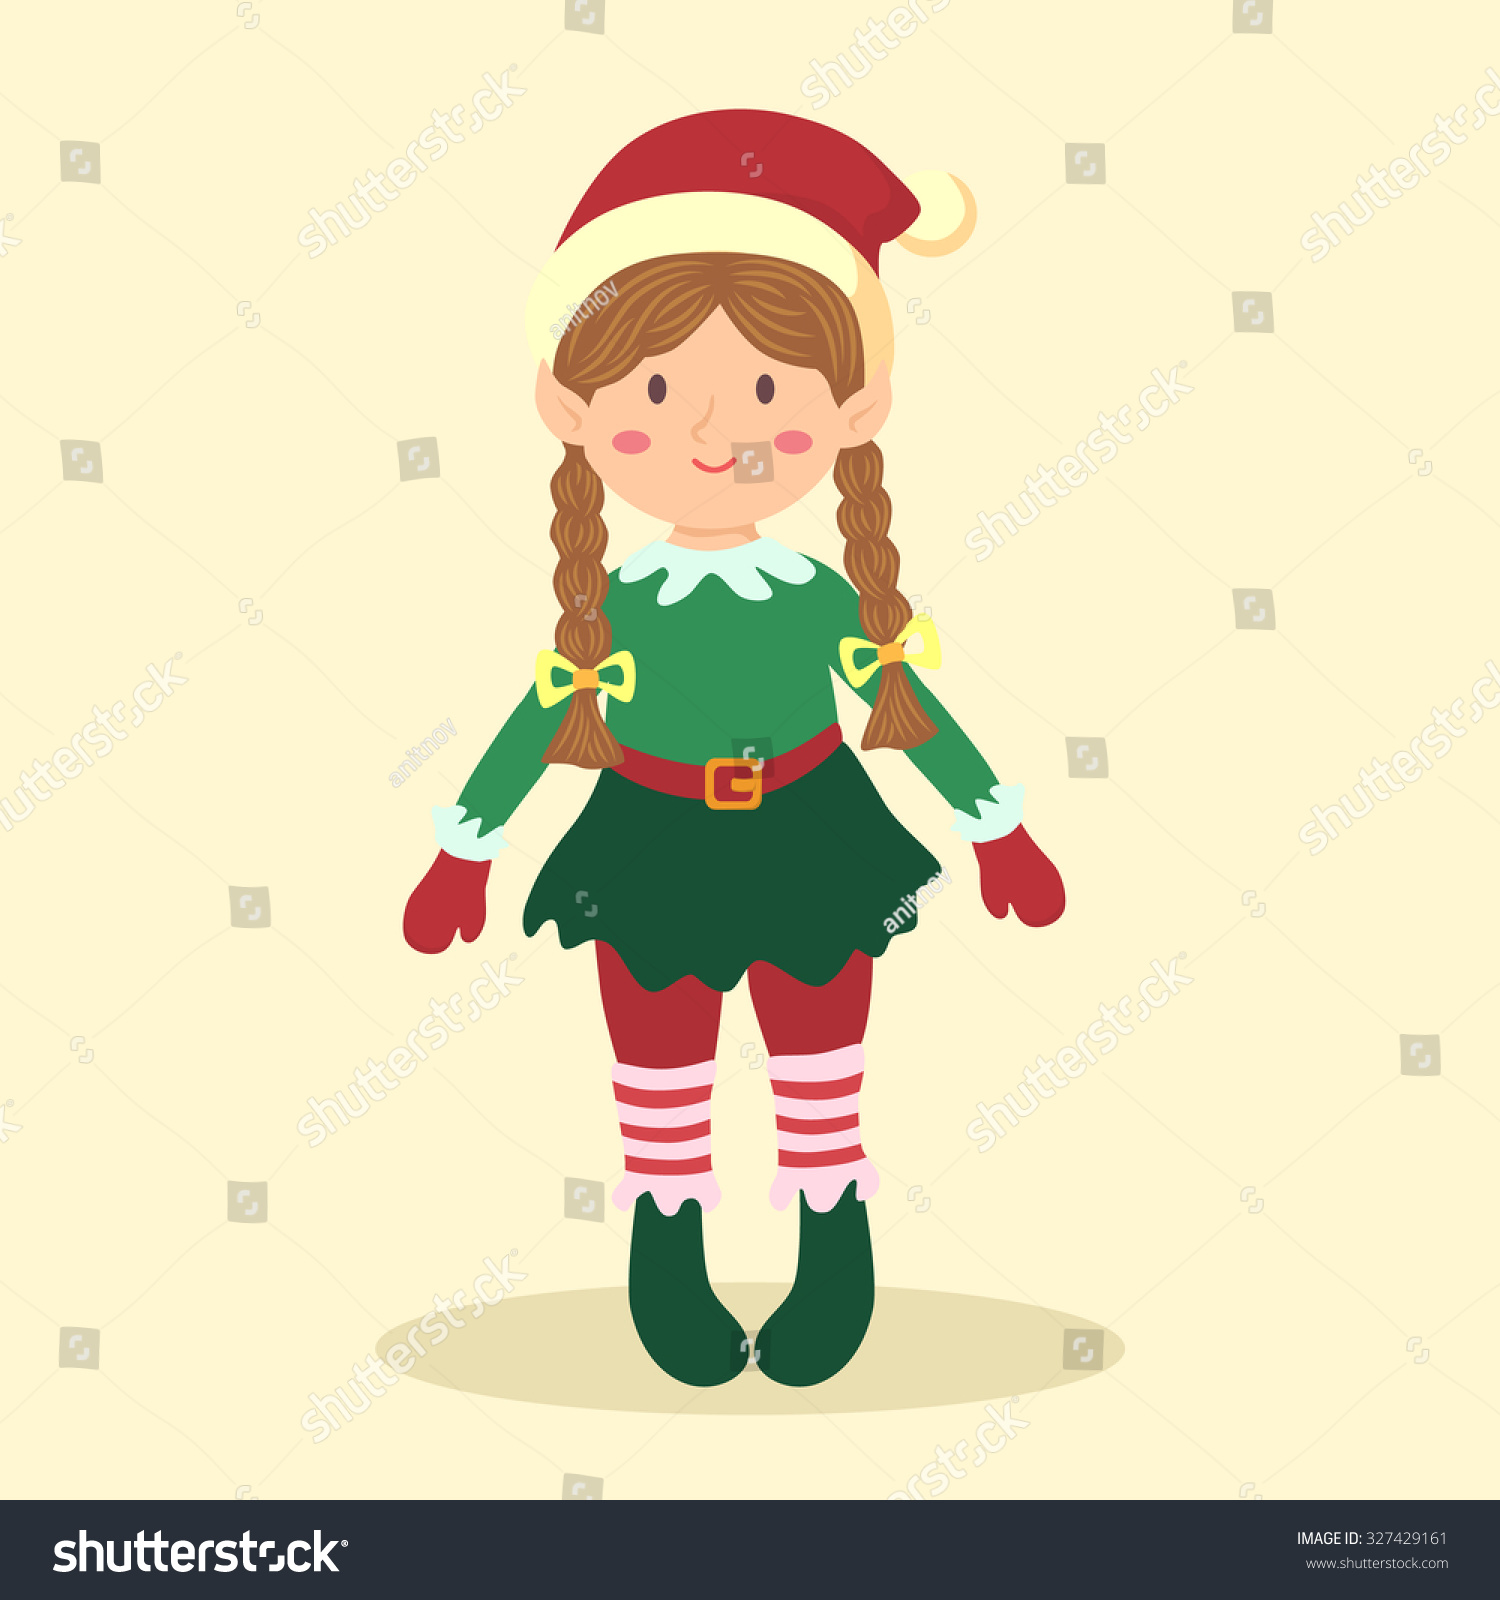 Christmas Elf Braid Girl Illustration Christmas Stock Vector ...